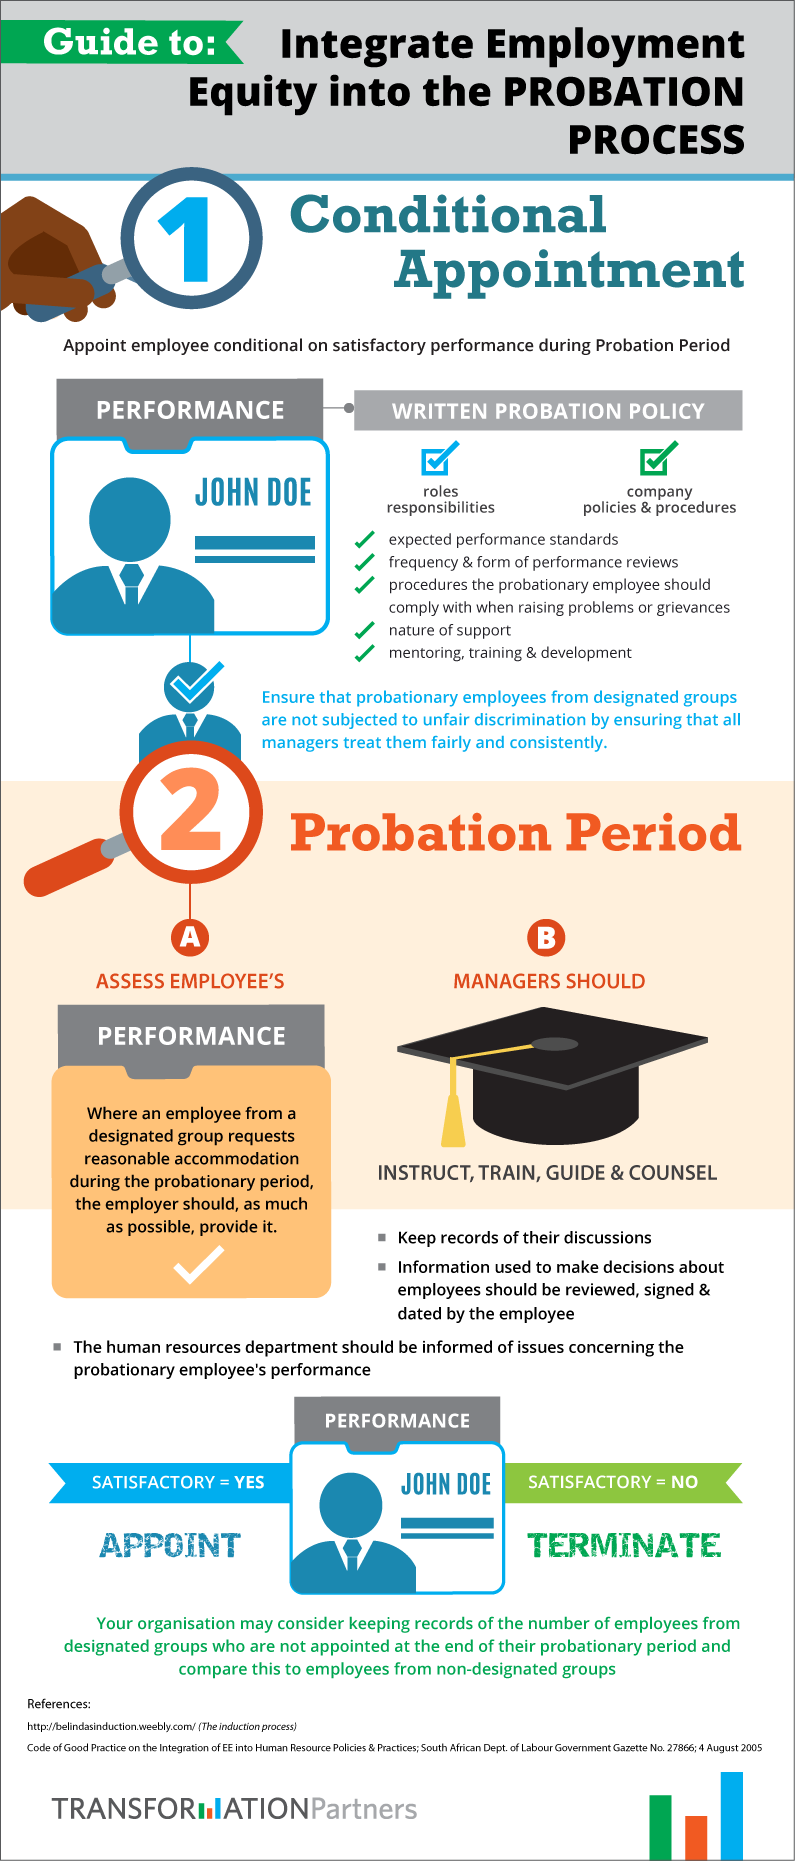 Integrating Employment Equity into the Probation Process